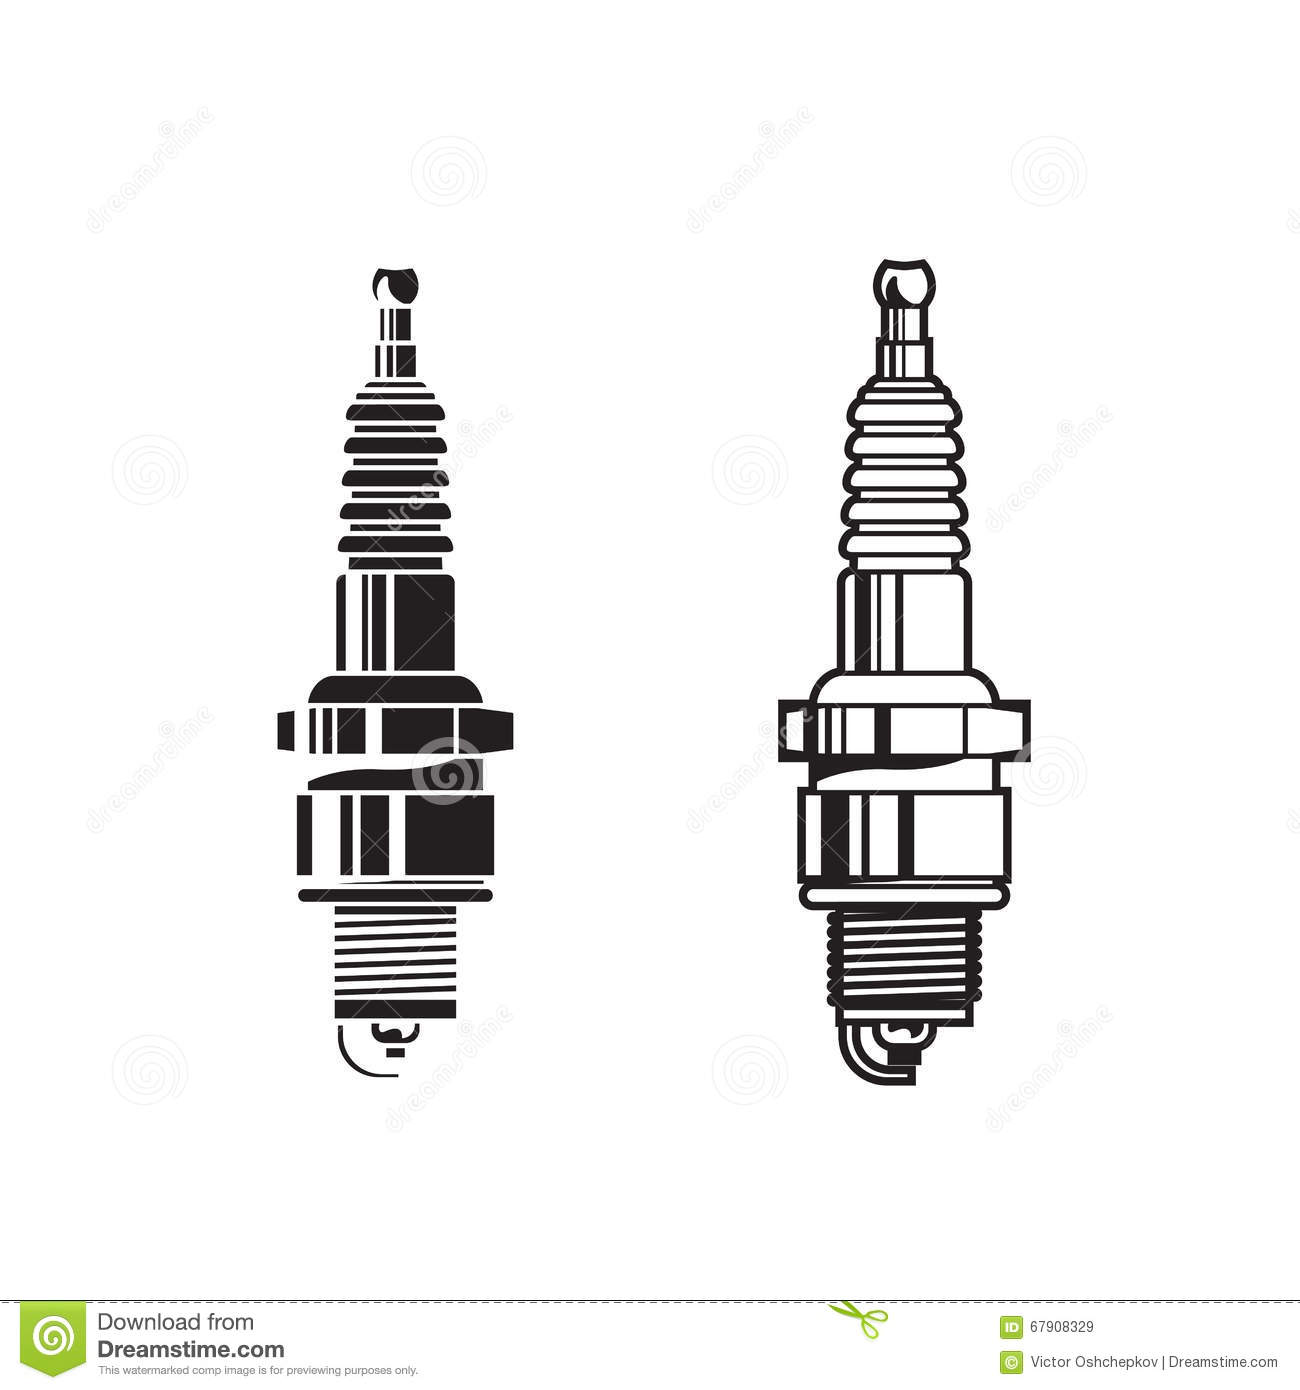 Ac In Car Temperature Sensor furthermore Automotive Industry Sario likewise NI2w 17348 besides Train Station Clipart Black And White moreover Sym mio 50 100 scooter. on electric car engine